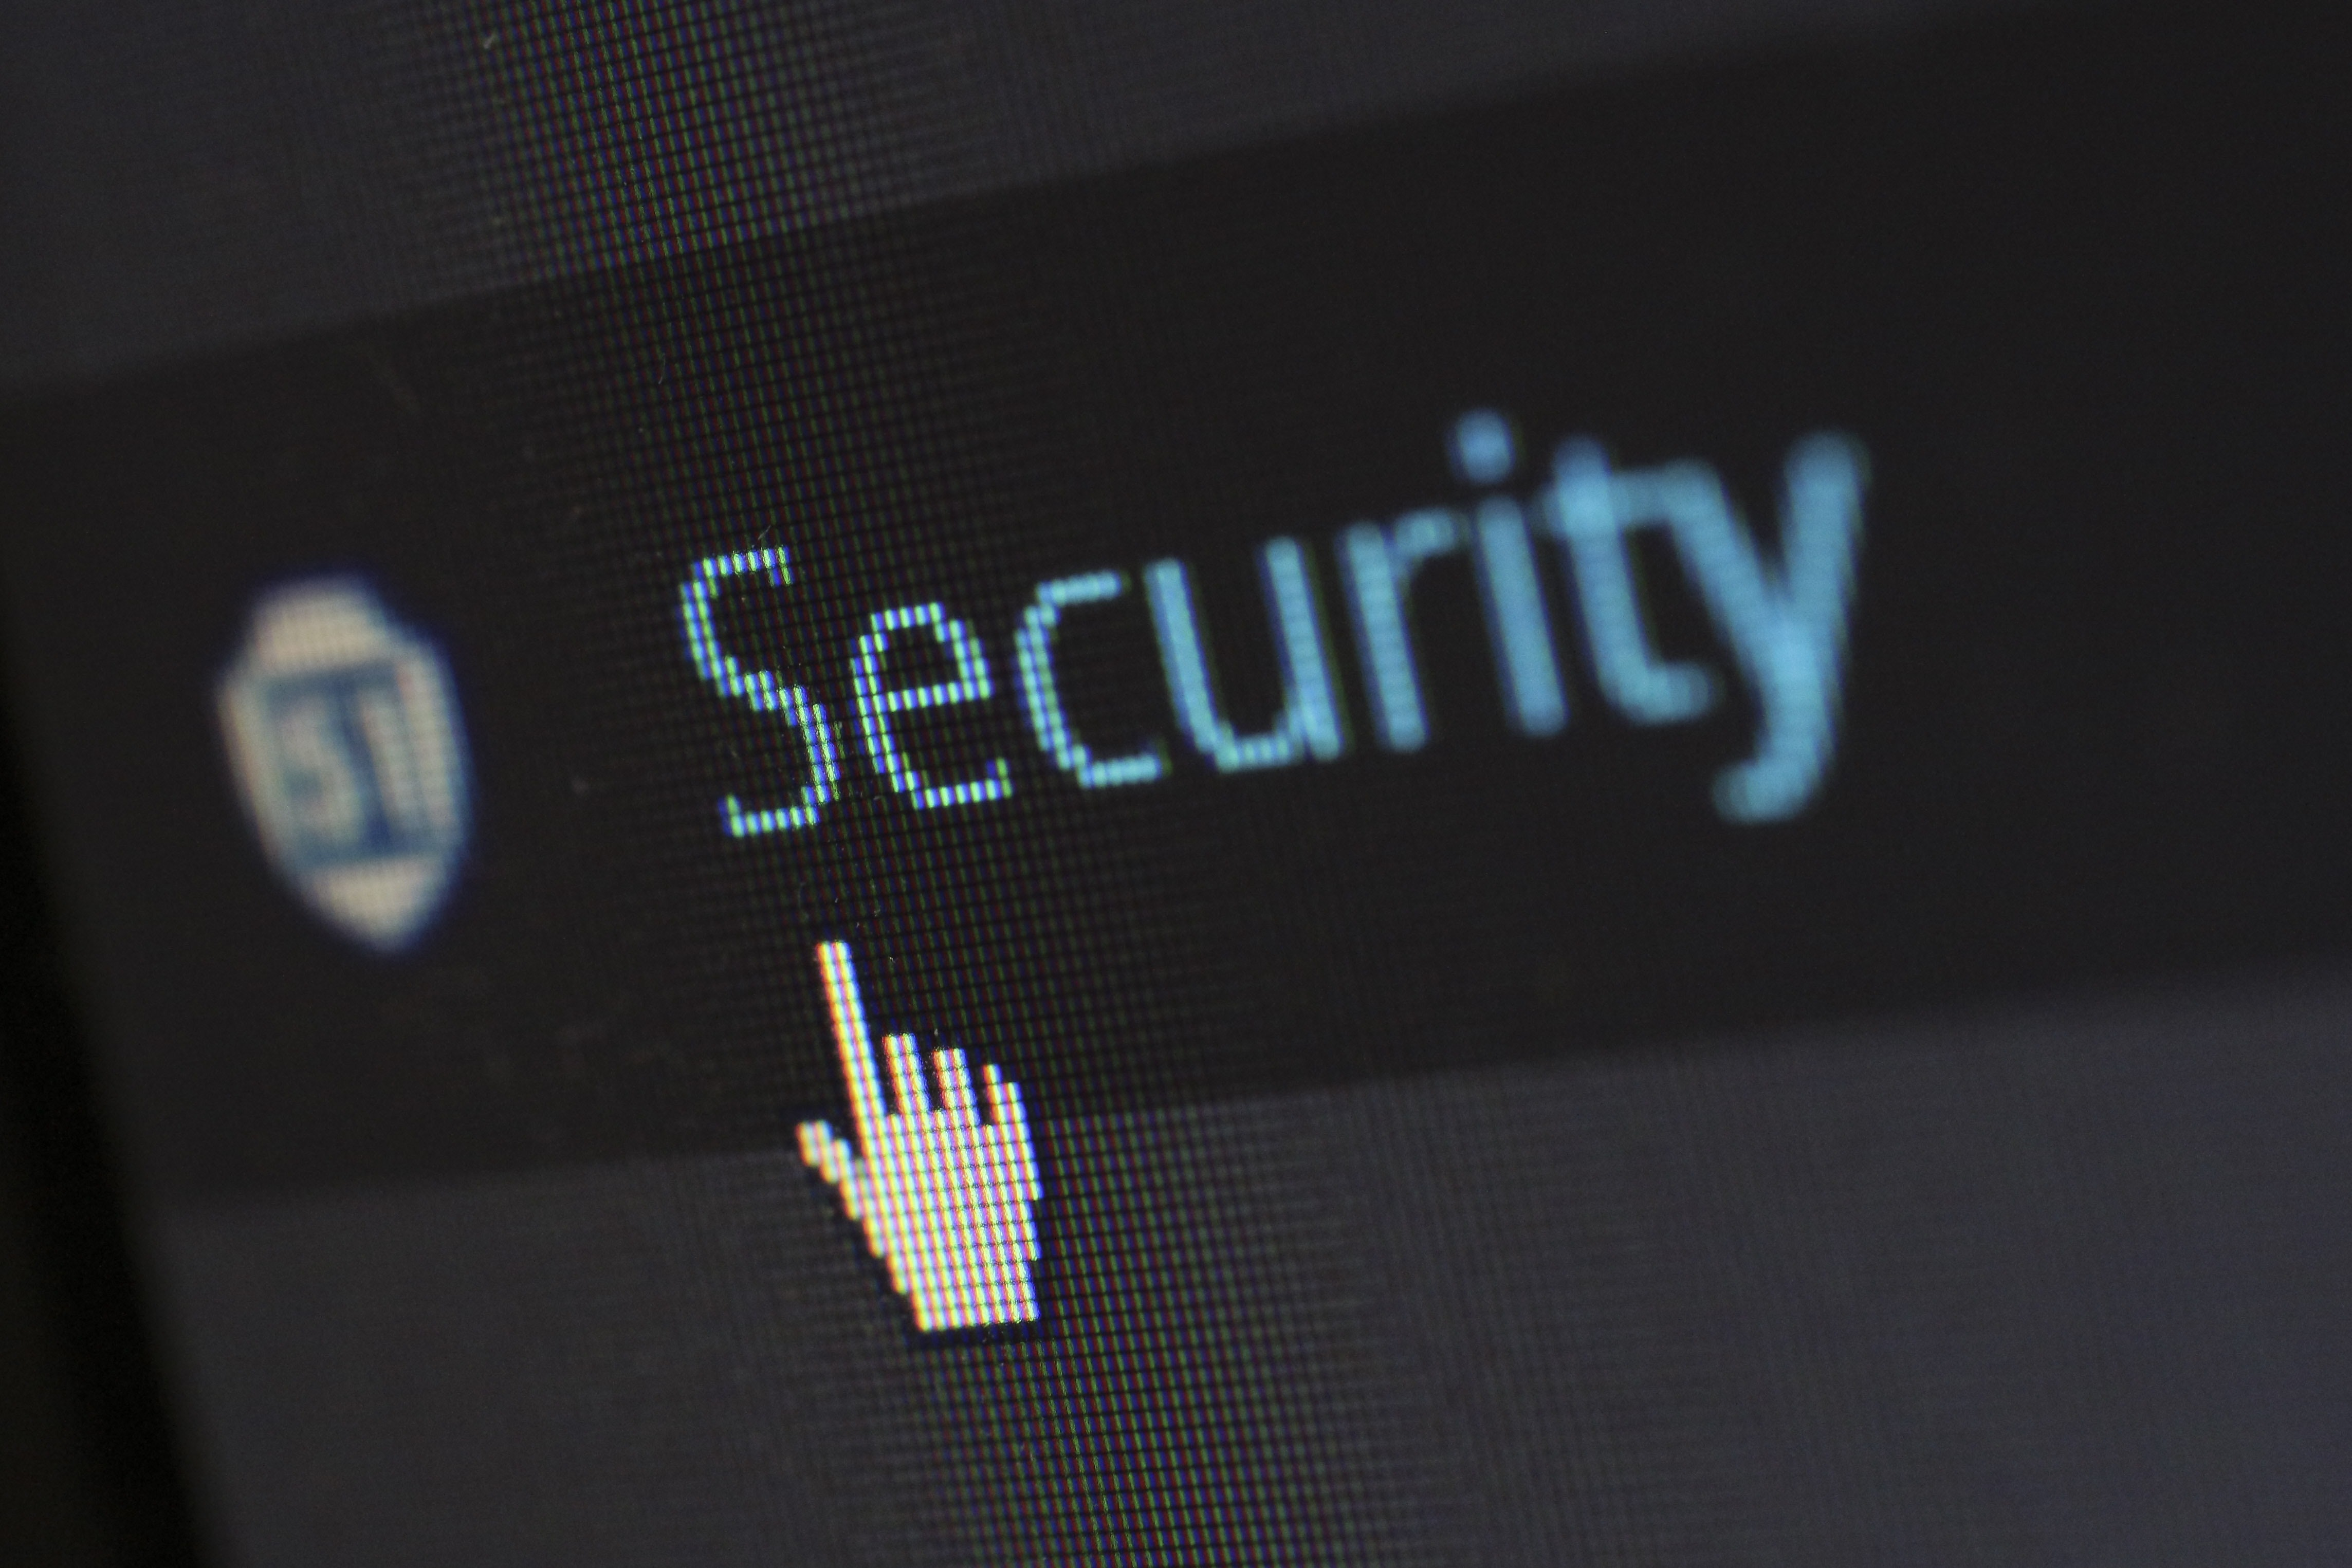 internet-screen-security-protection-60504.jpg